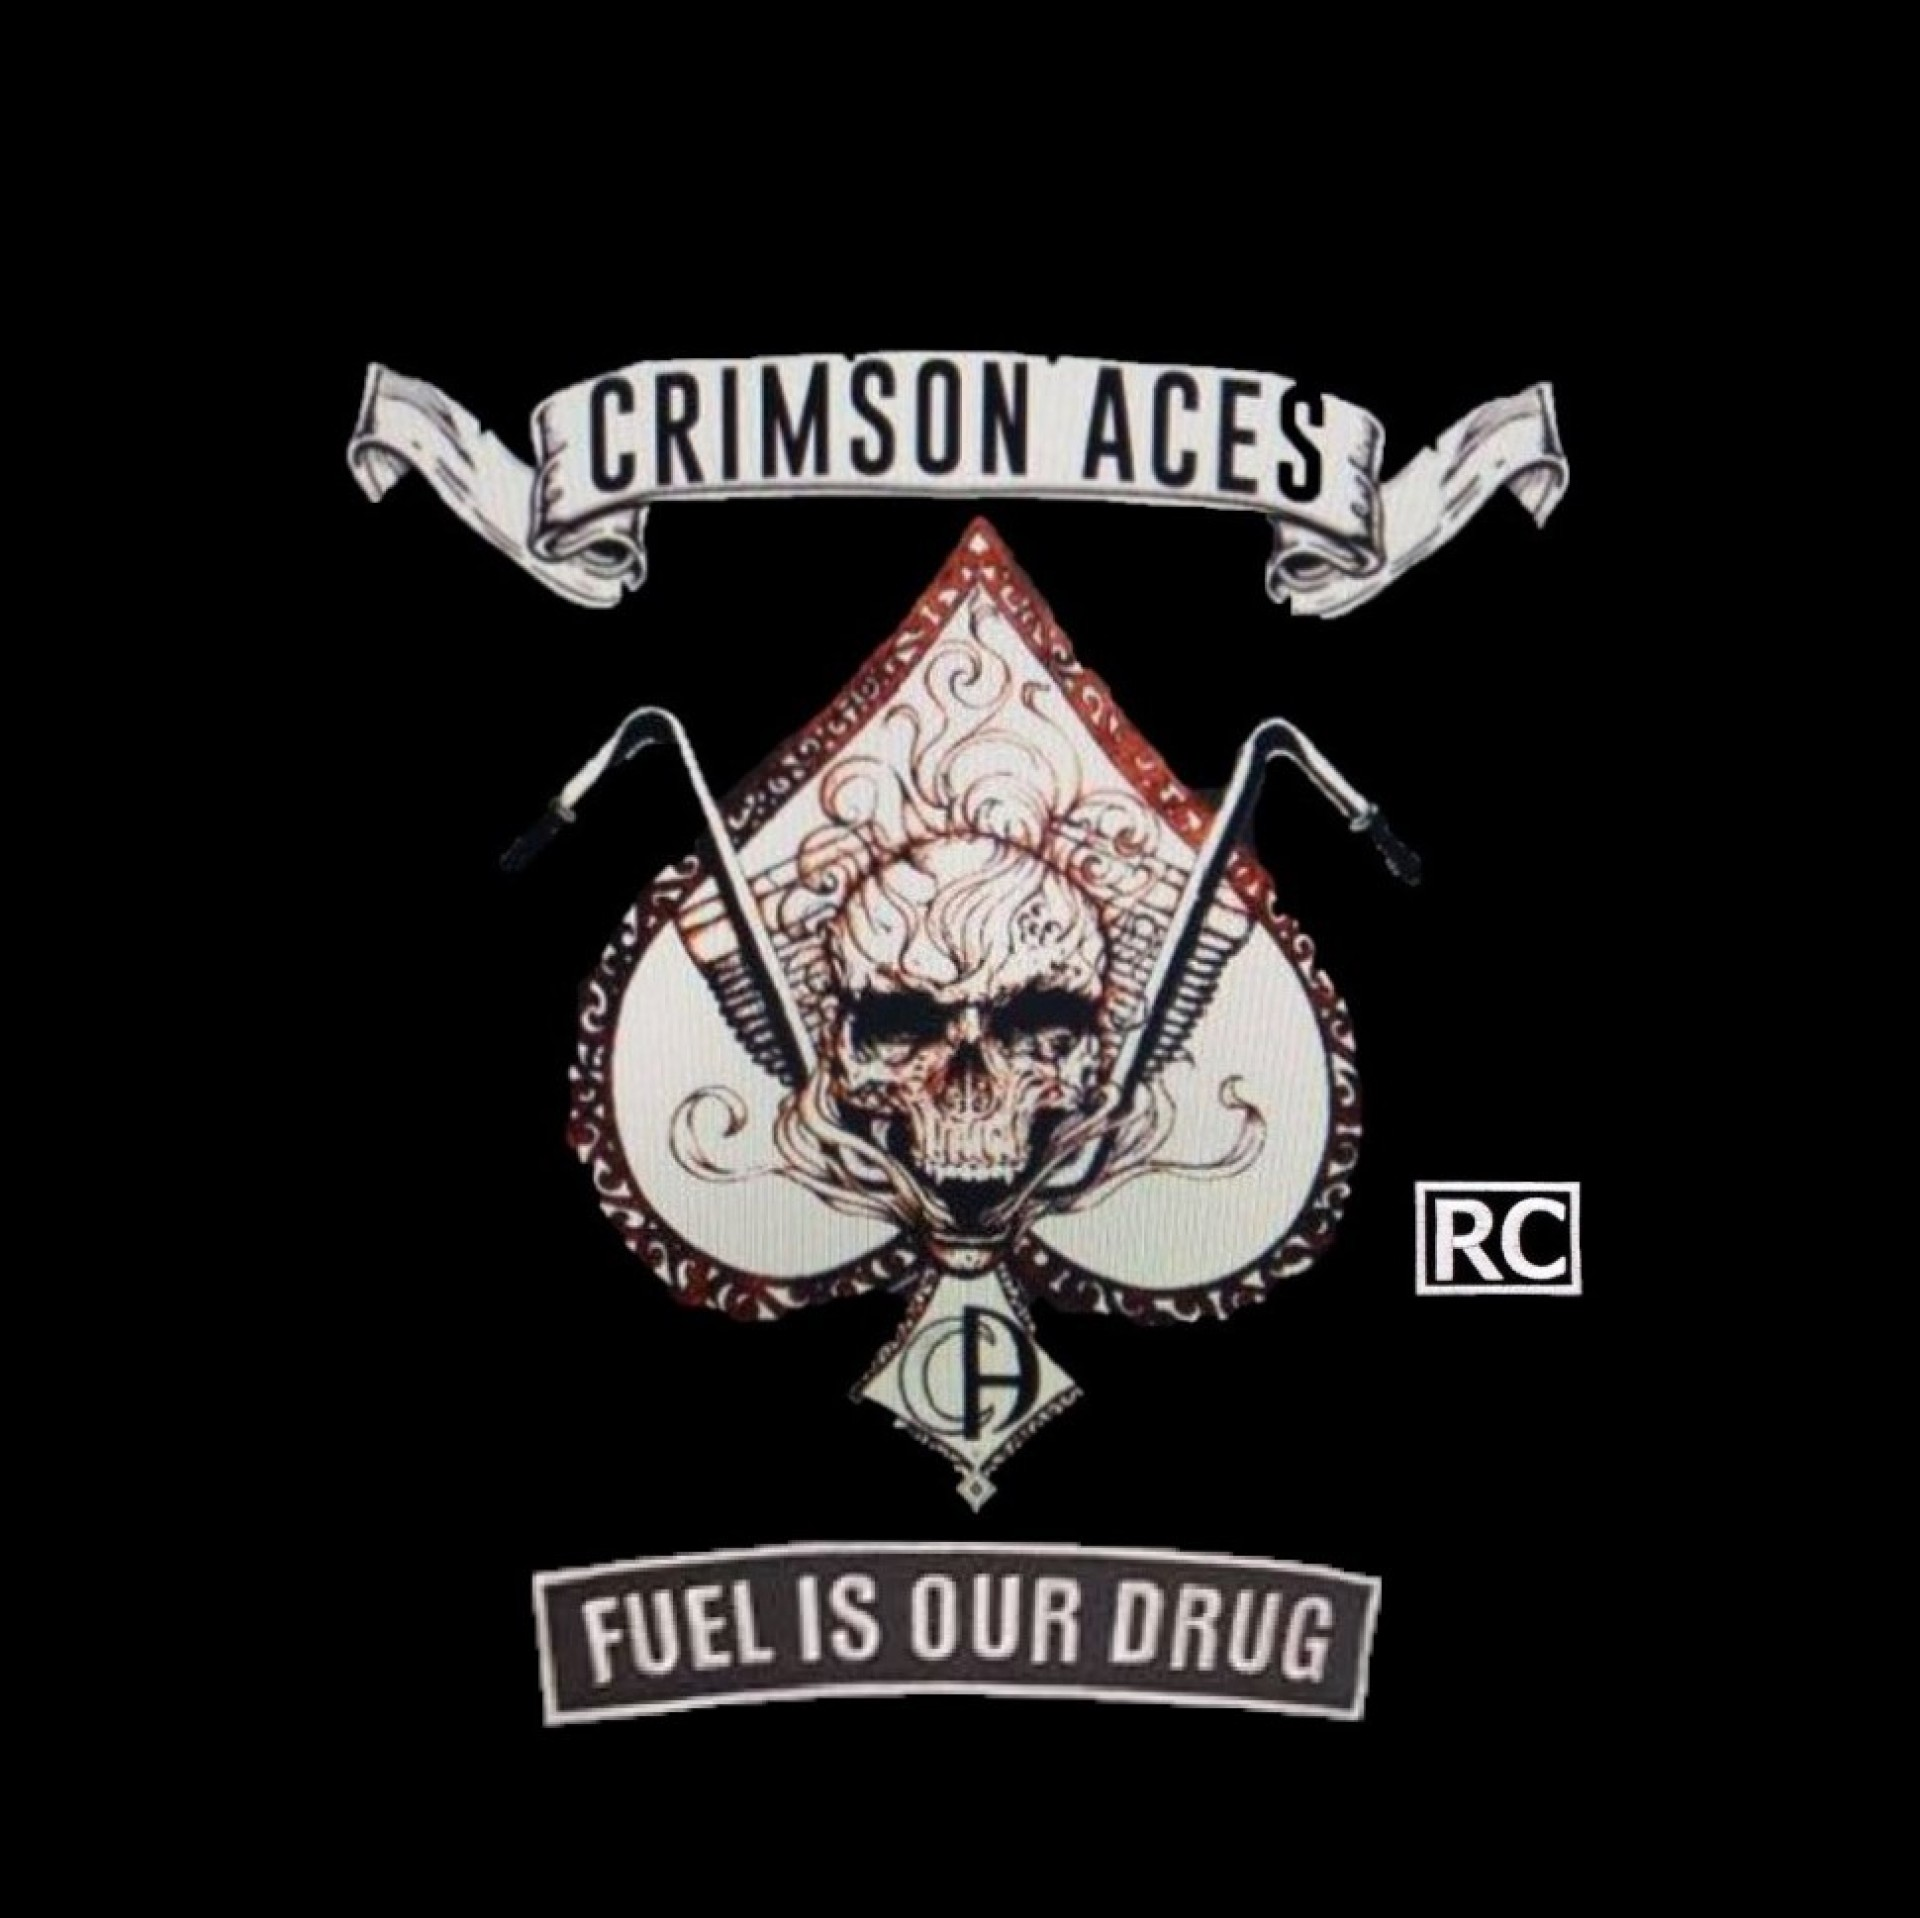 Crimson Aces logo